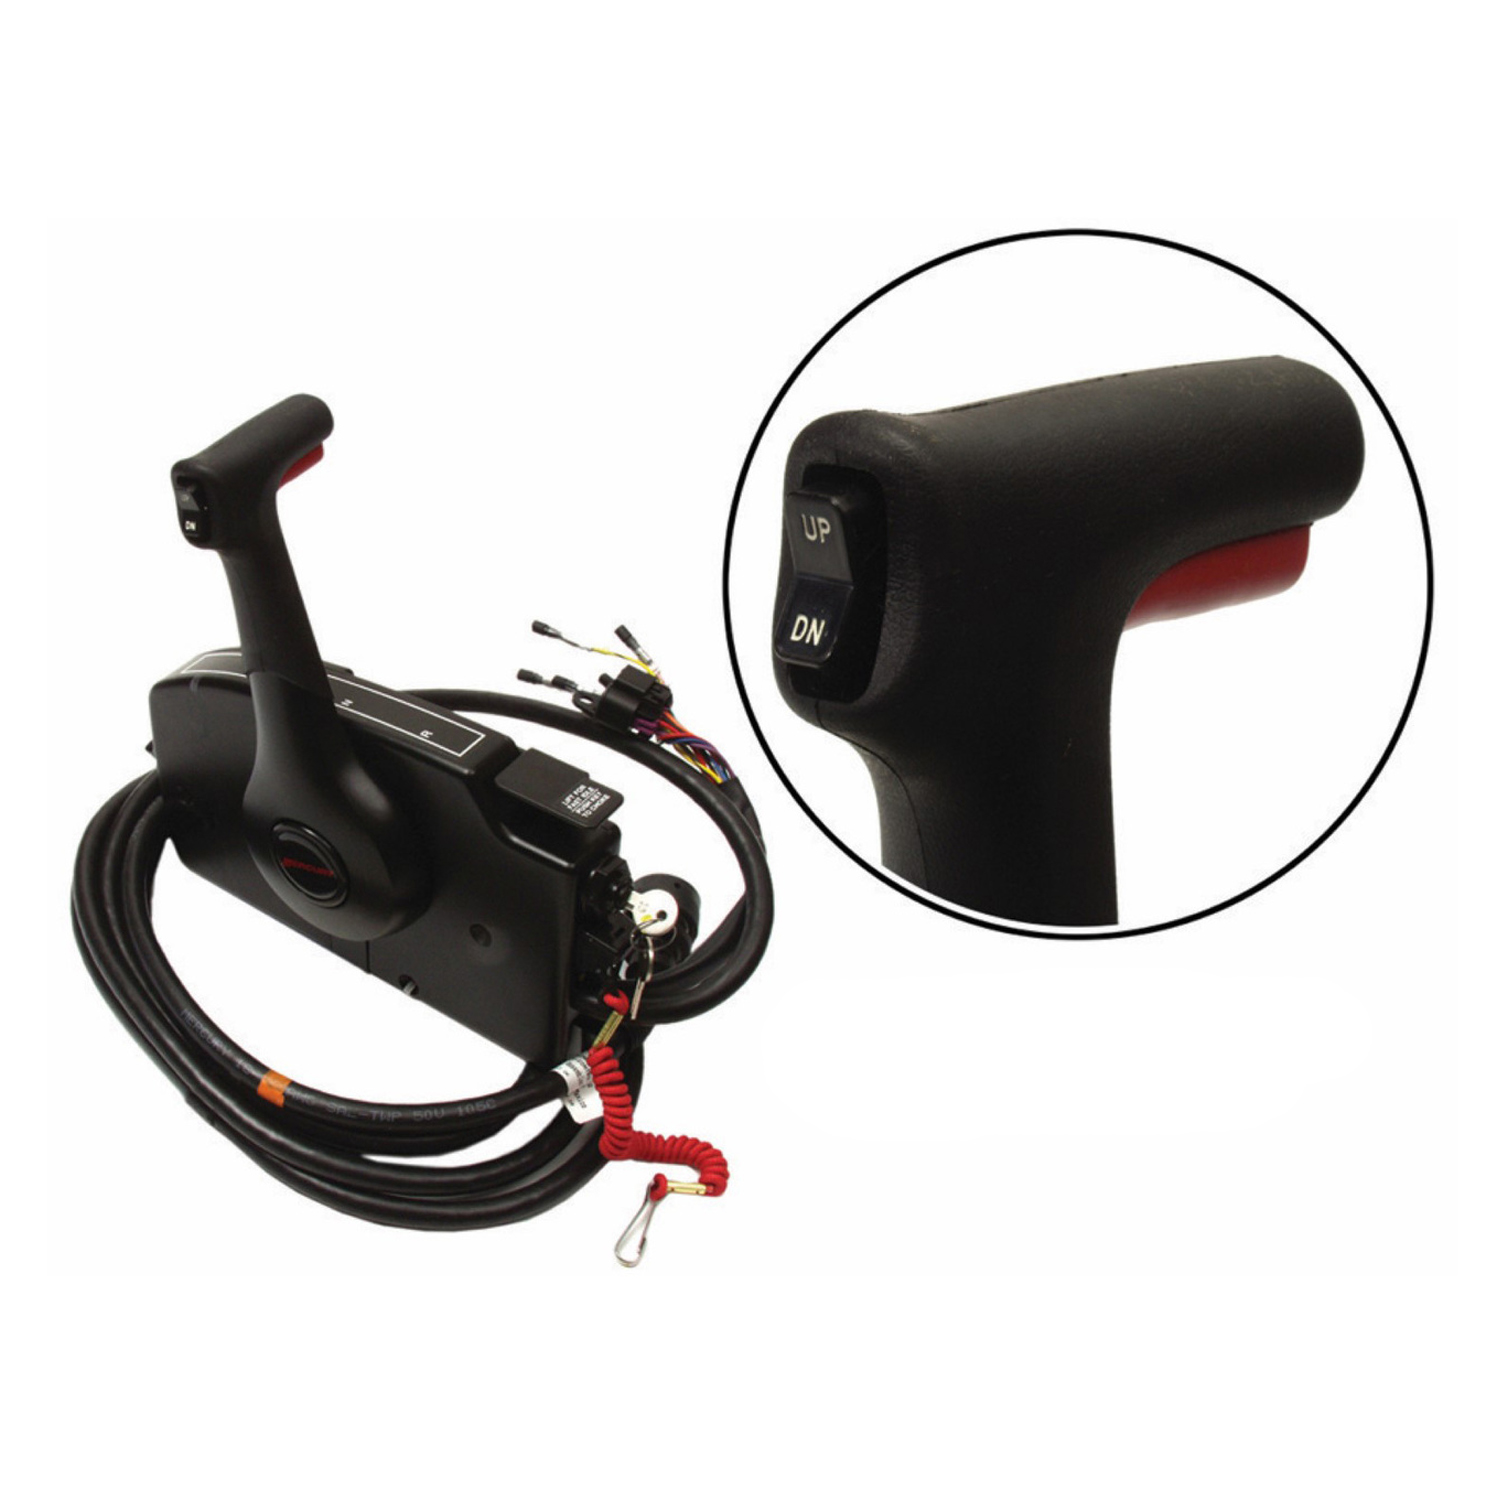 Image is loading Mercury-New-OEM-Side-Mount-Remote-Control-14-